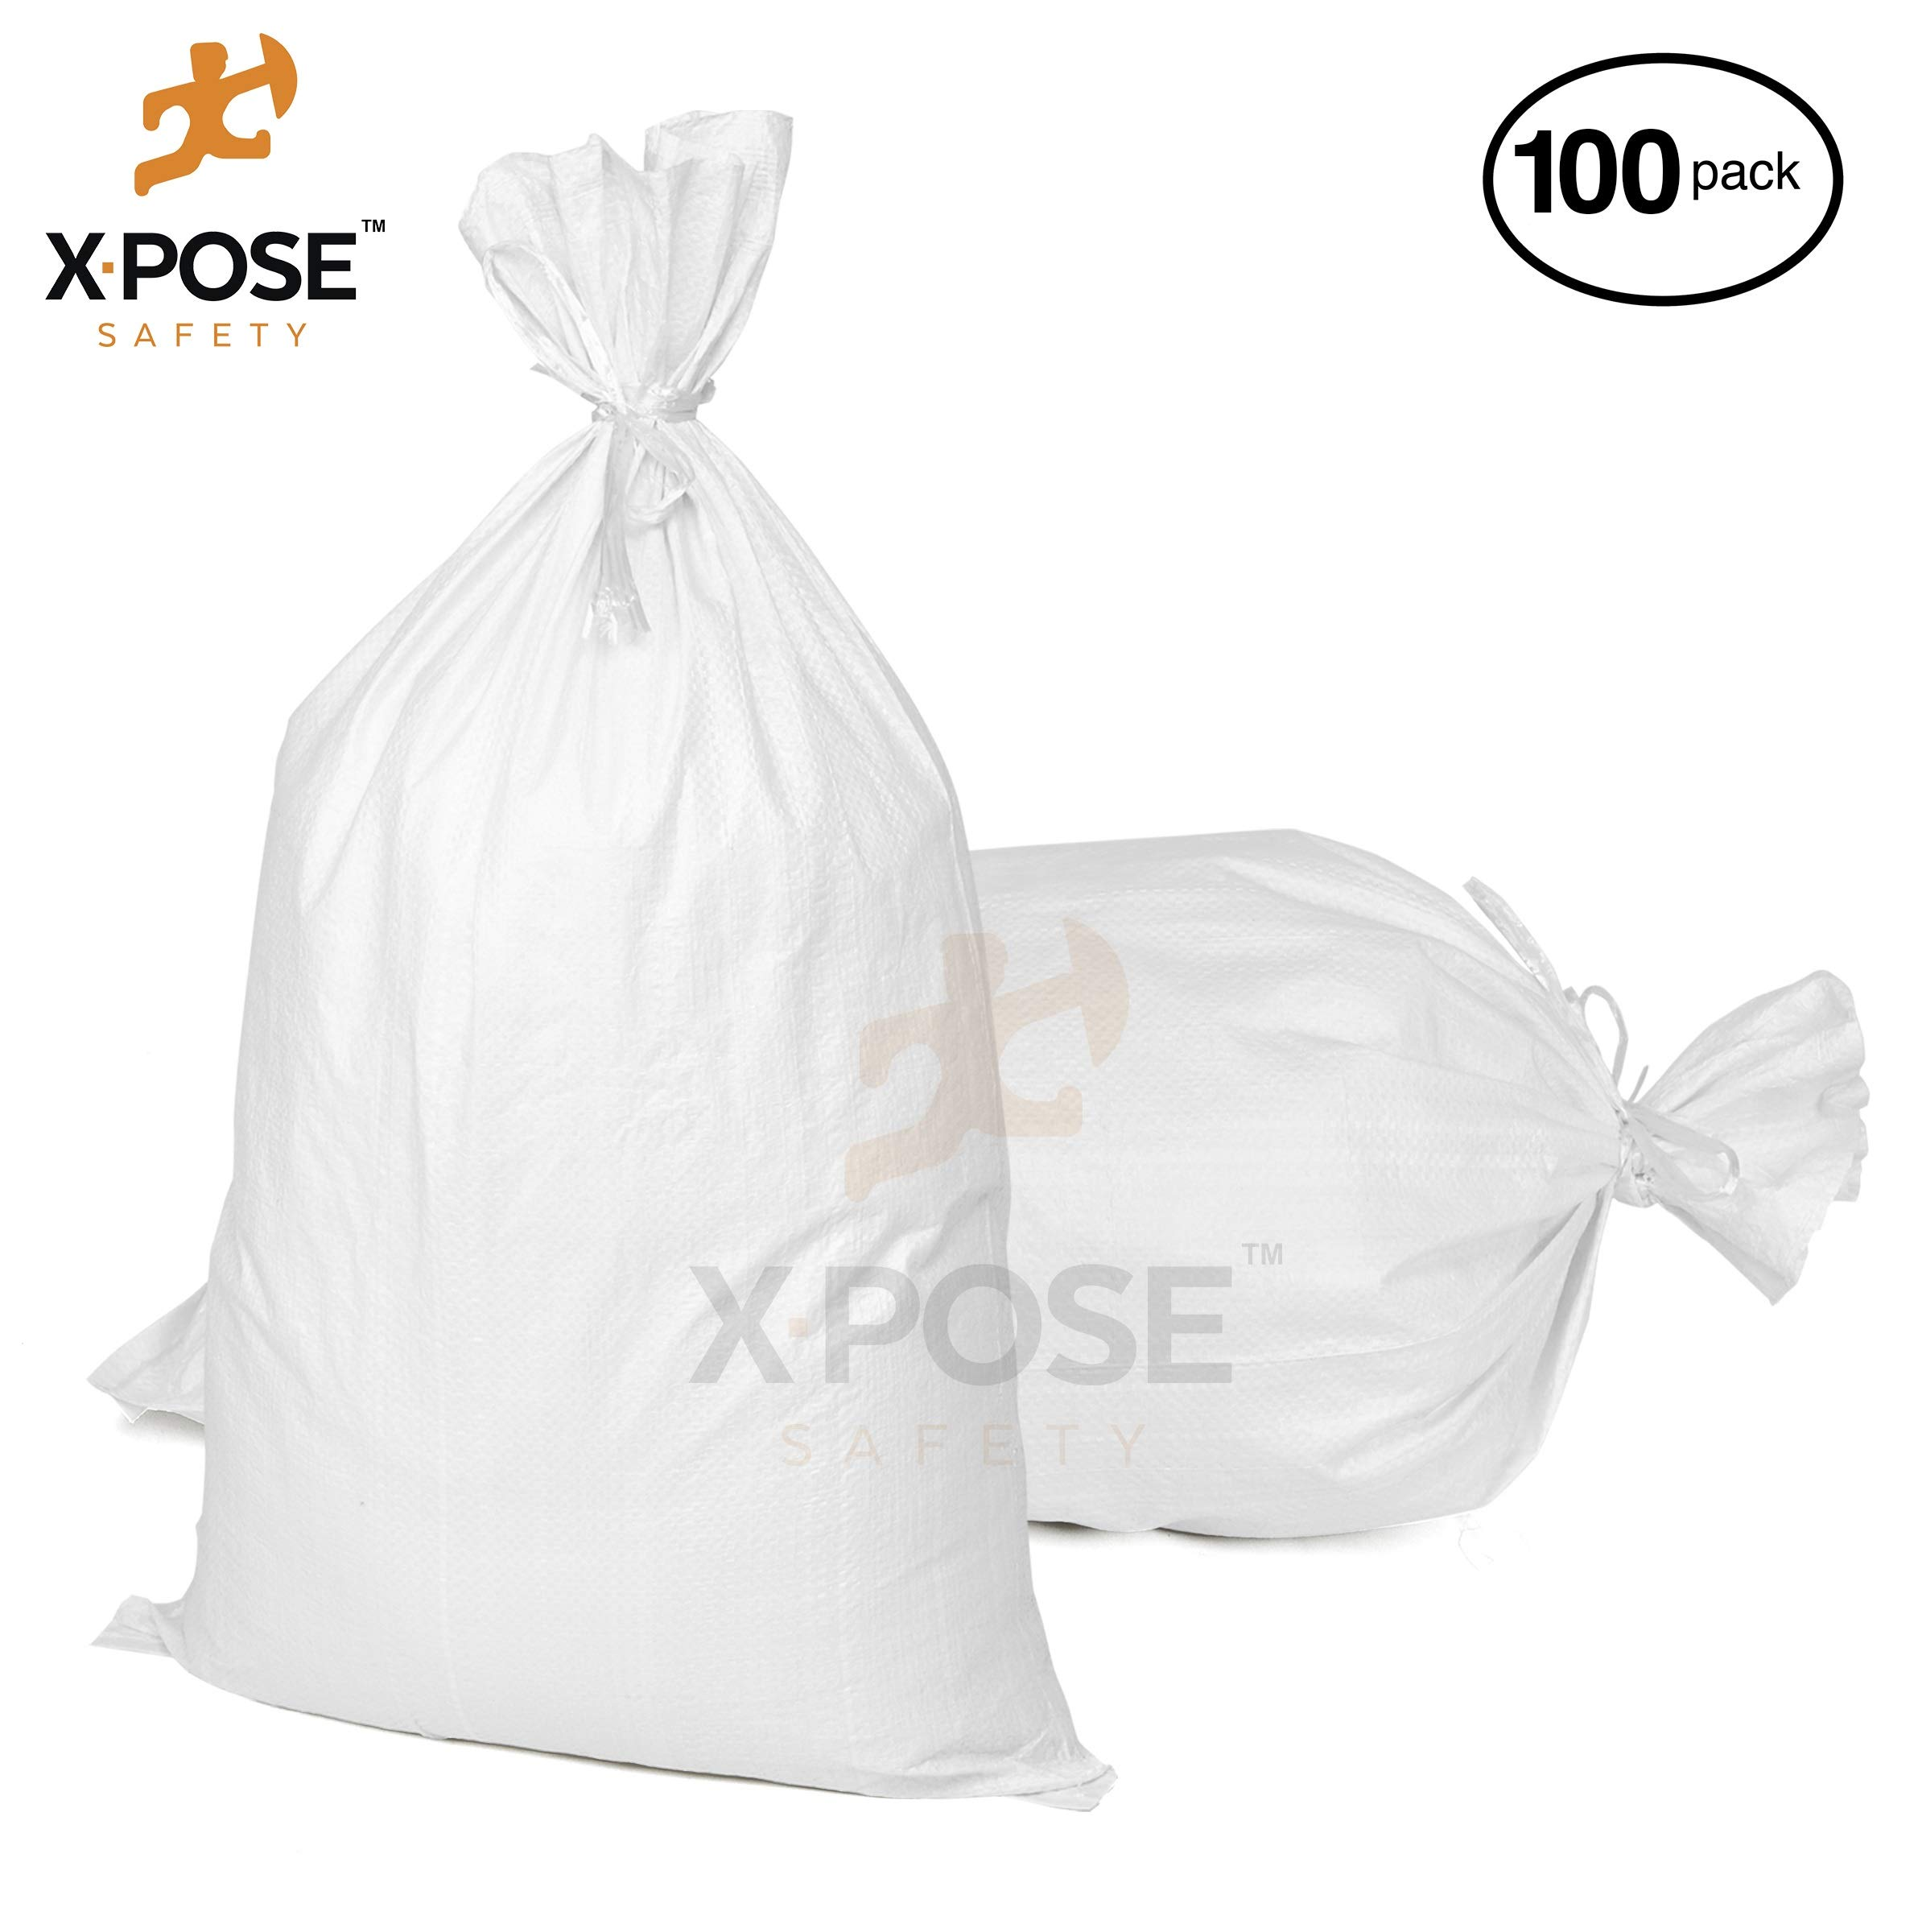 17''x27'' Empty Sand Bags, 100 Pack with Ties - Heavy Duty Woven Polypropylene, UV Sun Protection, Dust, Water and Oil Resistant - Home and Industrial - Floods, Photography and More - by Xpose Safety by Xpose Safety